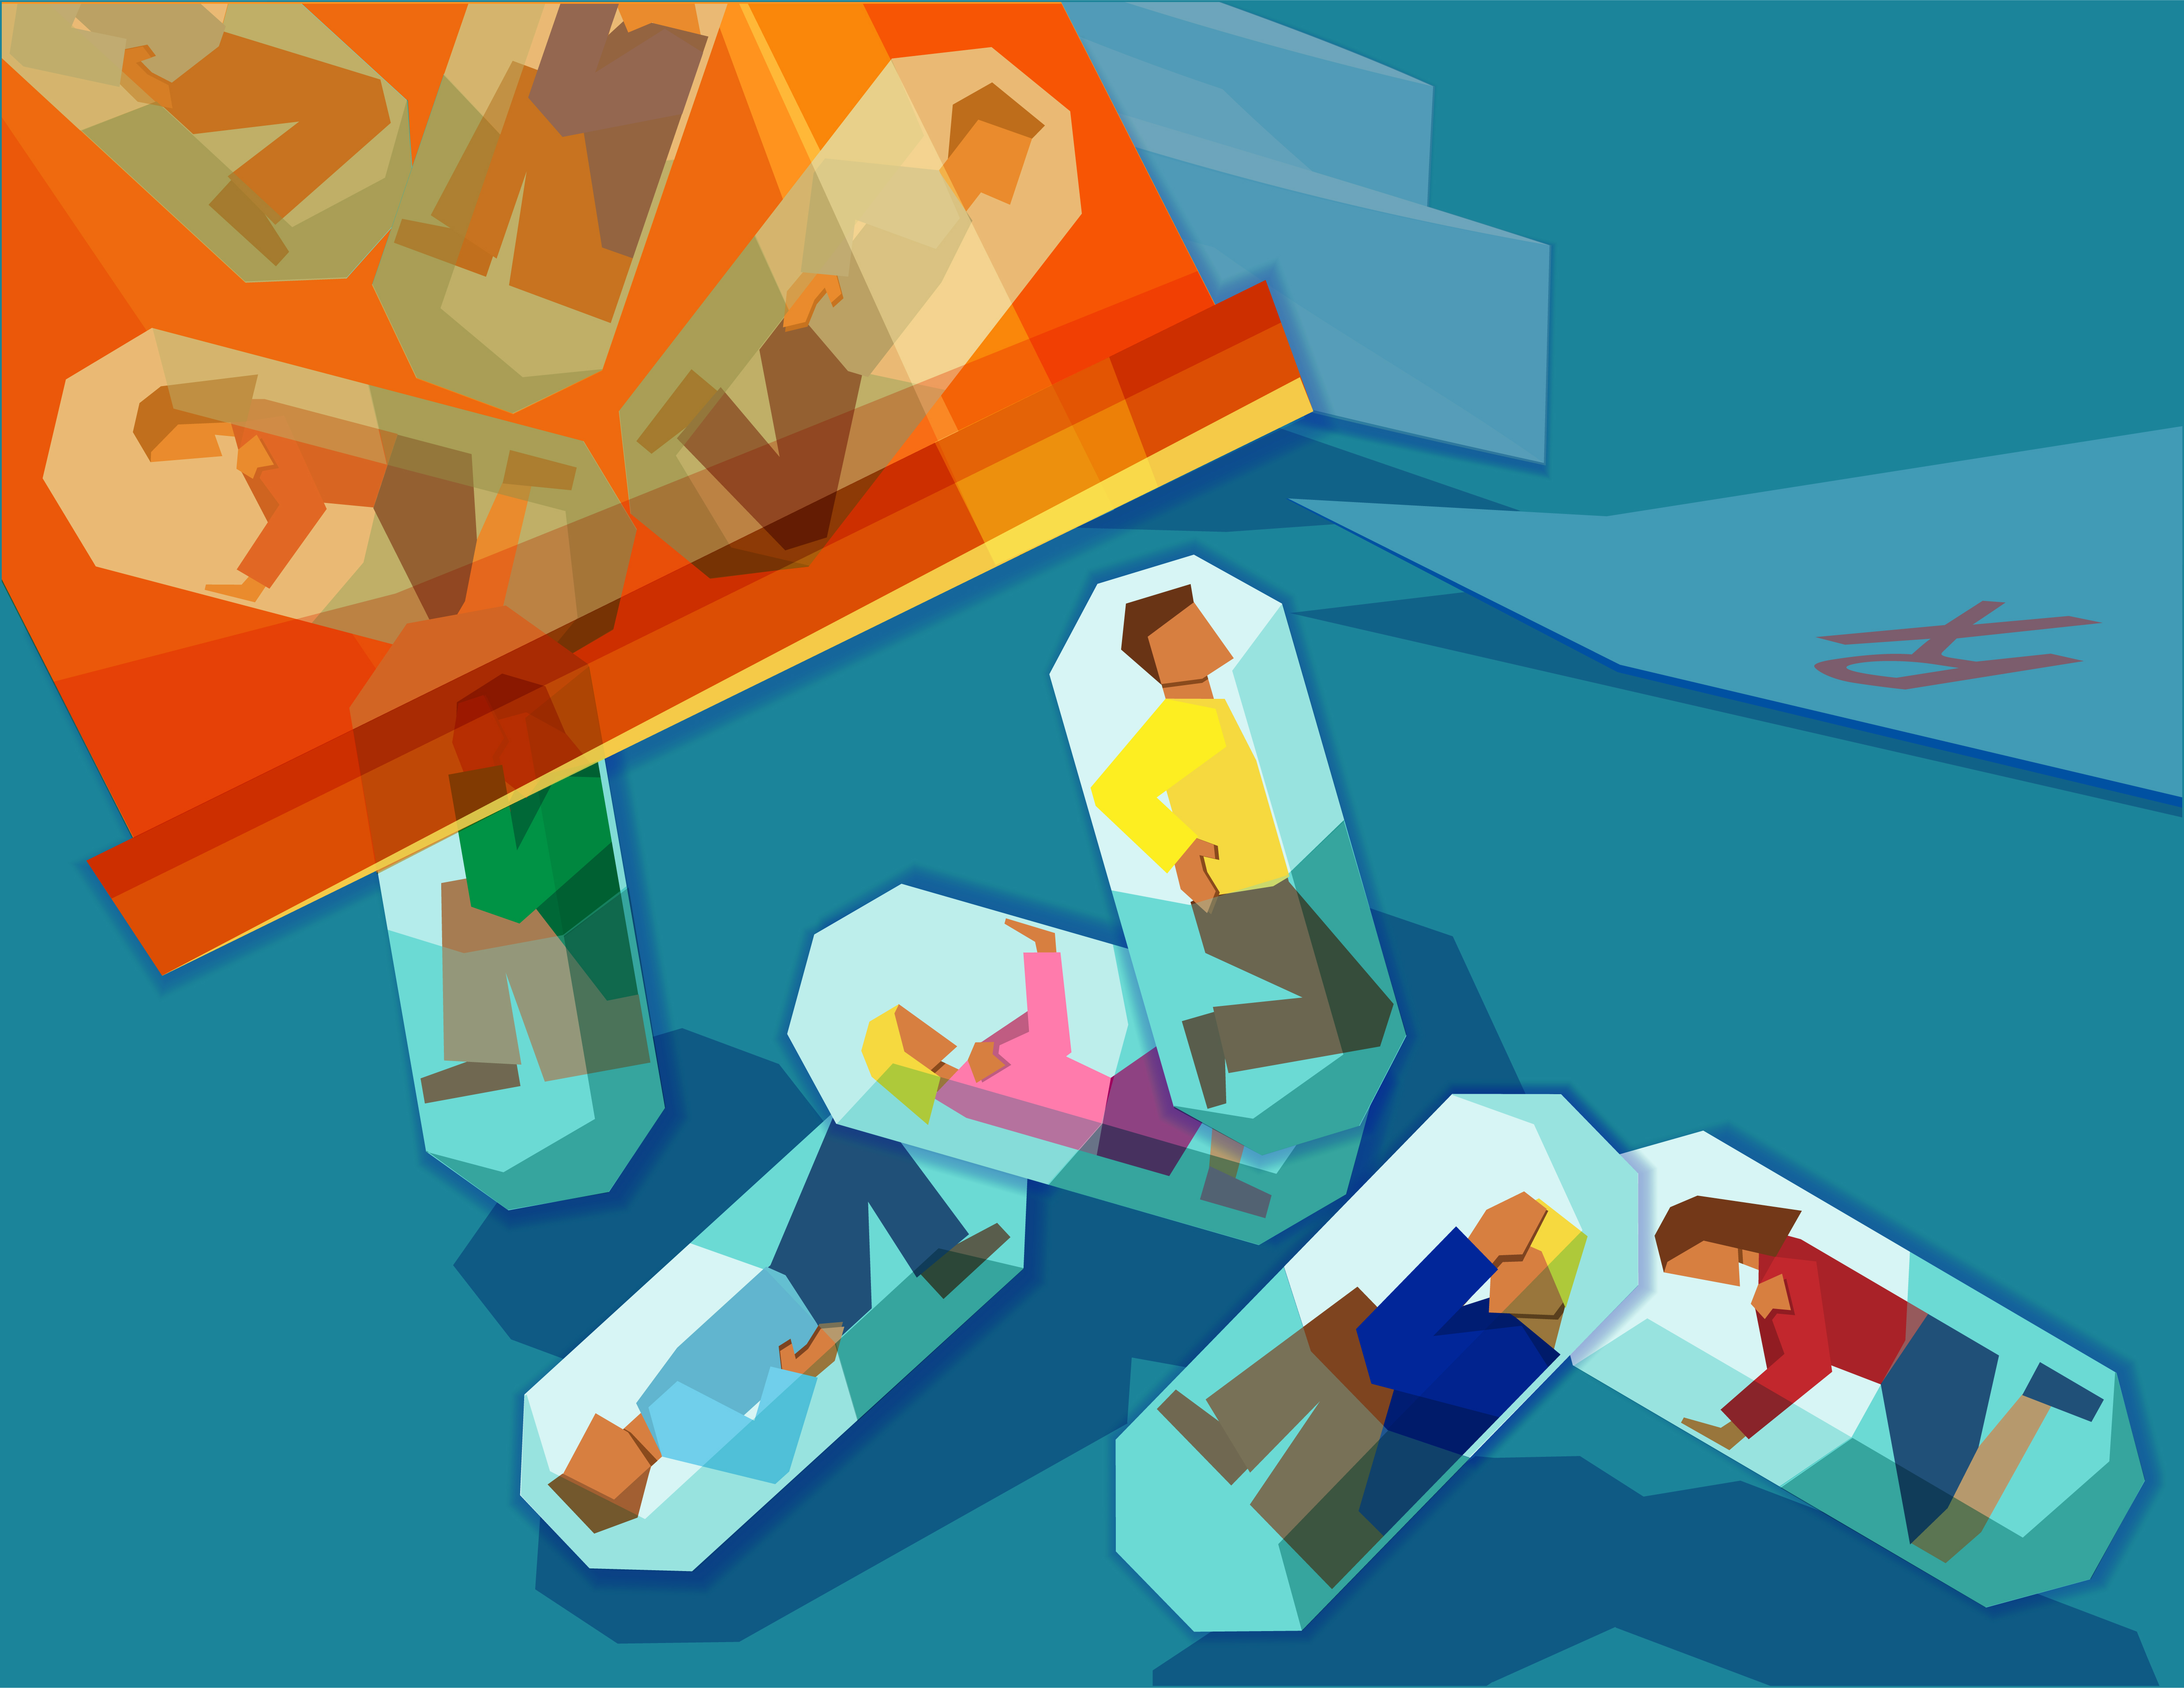 Opioid Lawsuit Payout Plans Overlook a Vital Need: Pain Management Care and Research Focused on Smarter Use of Addictive Drugs